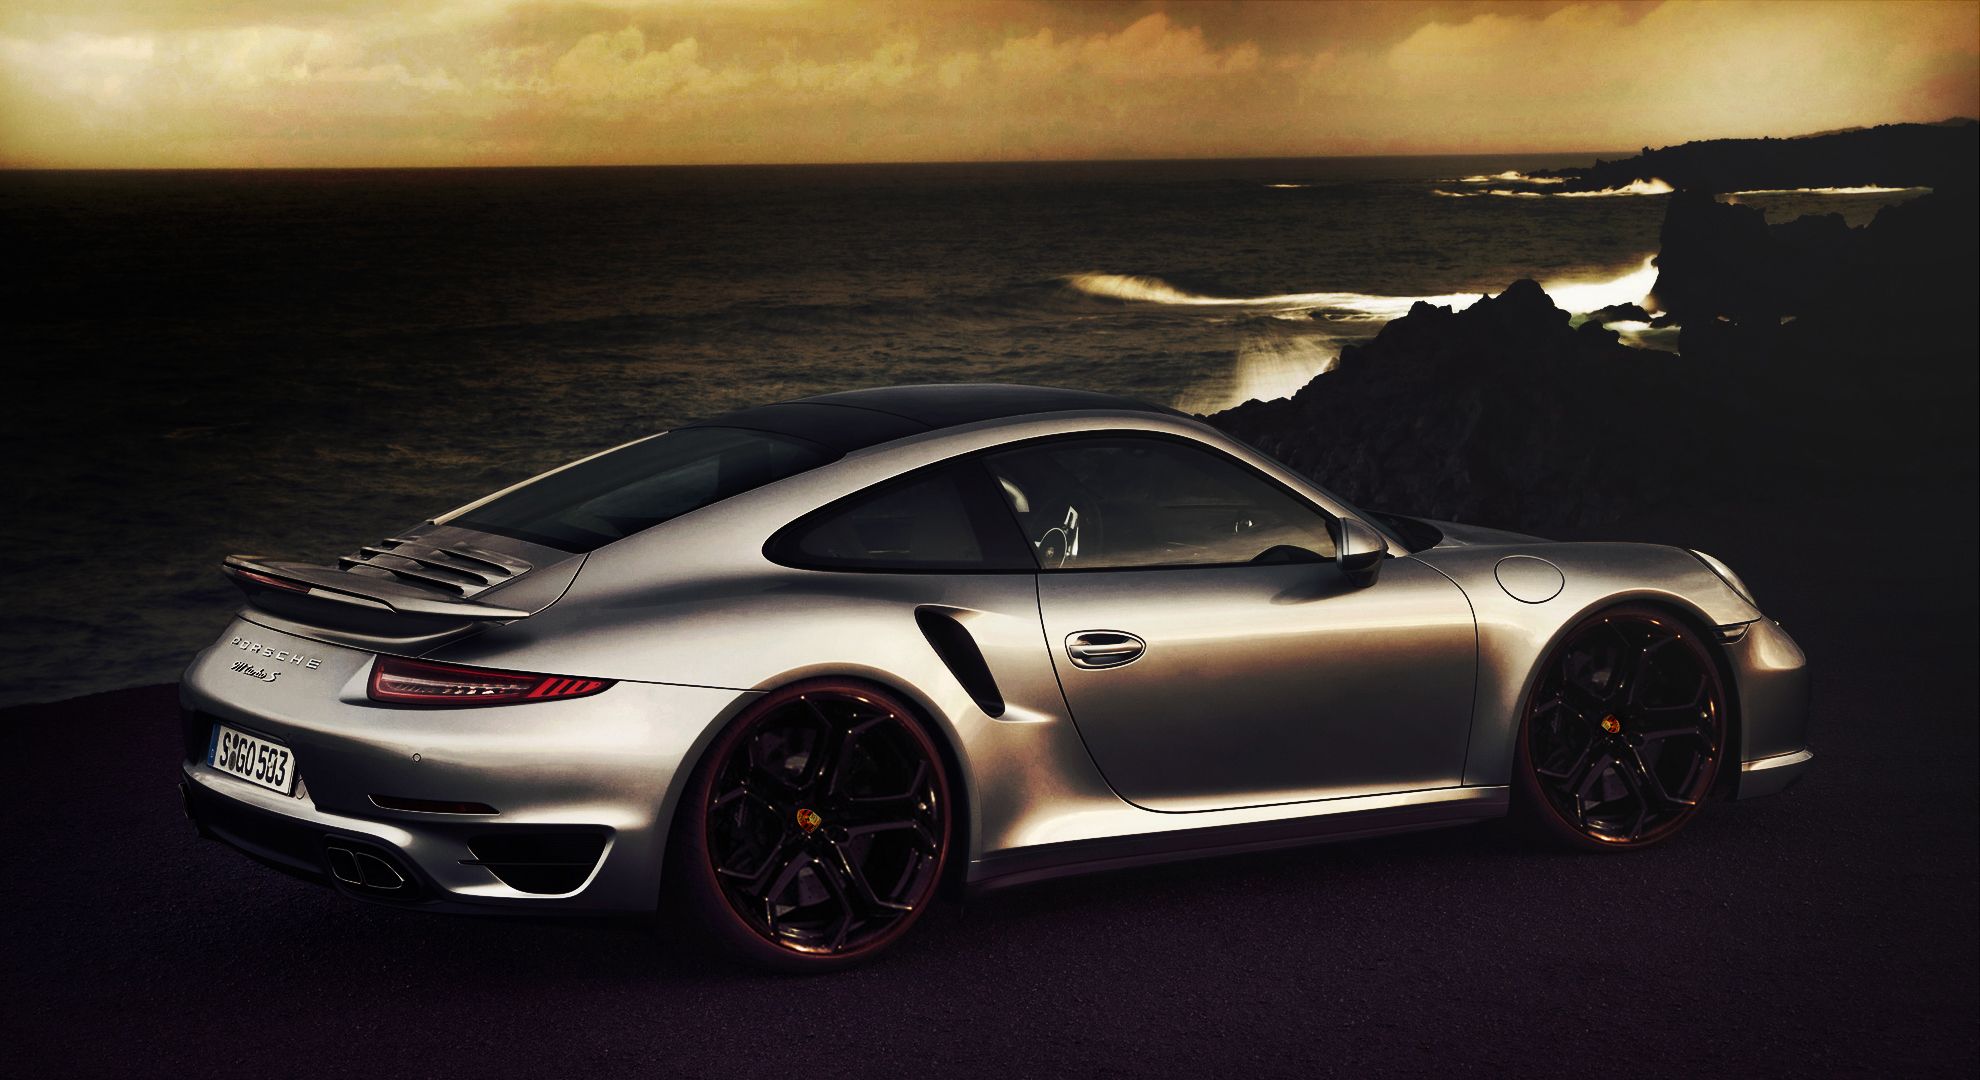 Porsche 911 Turbo S Wallpaper by GFXy 1980x1080